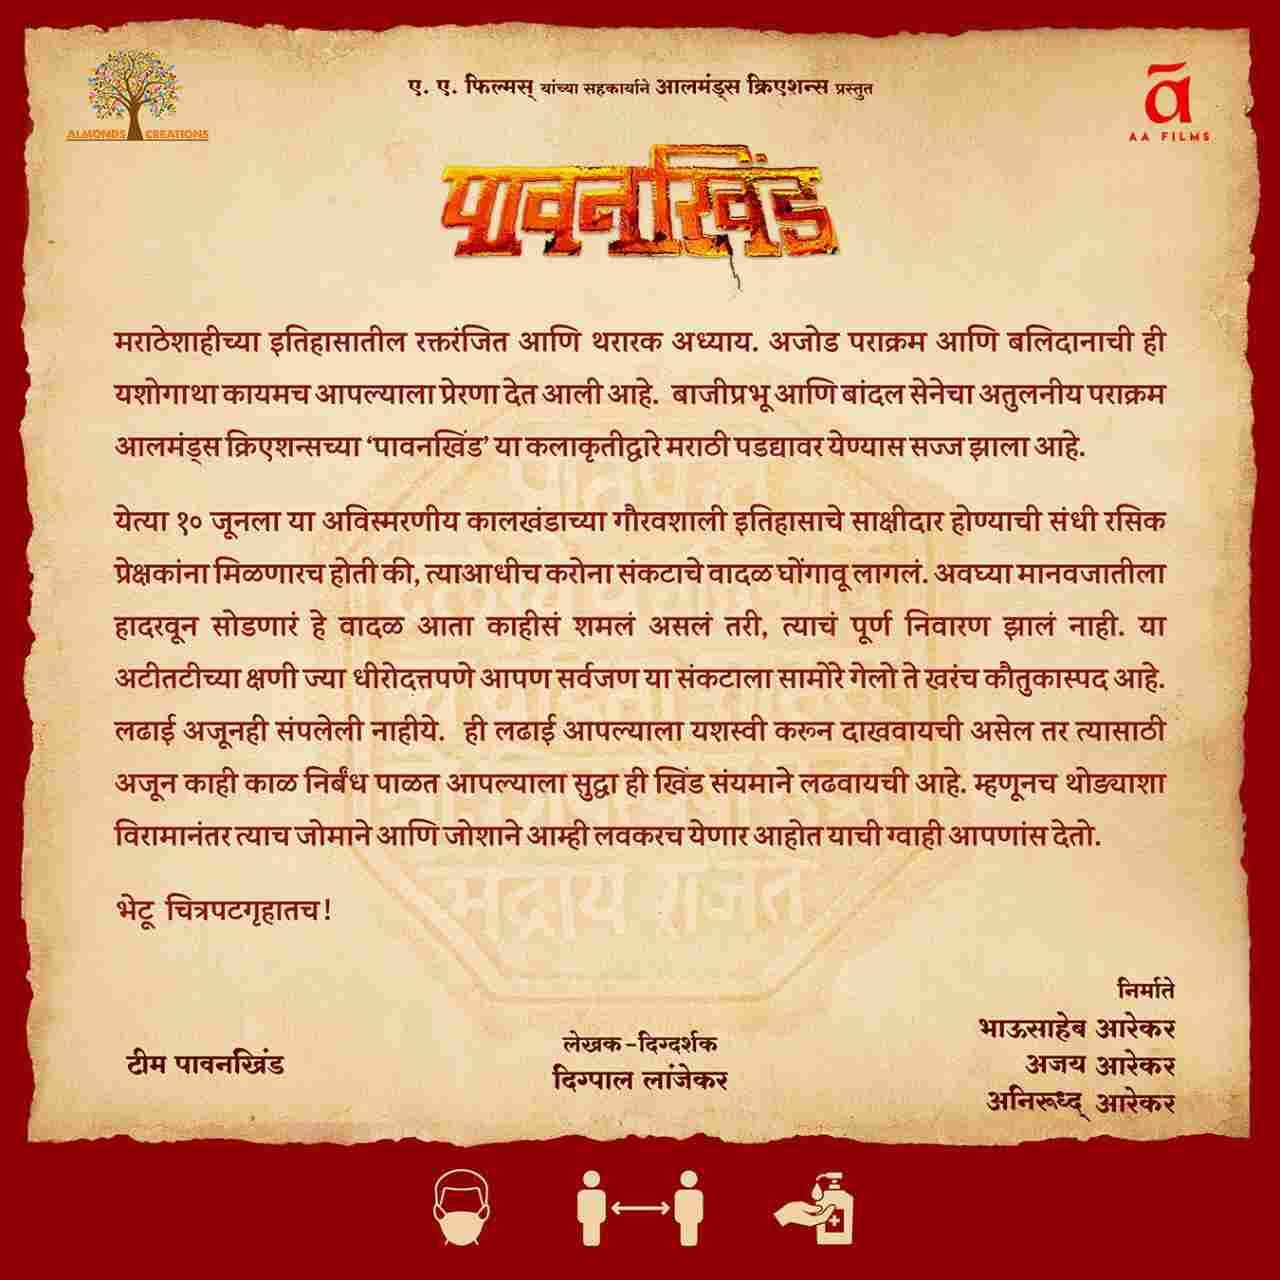 Marathi Film Pawankhind will be released only in theatres declaration